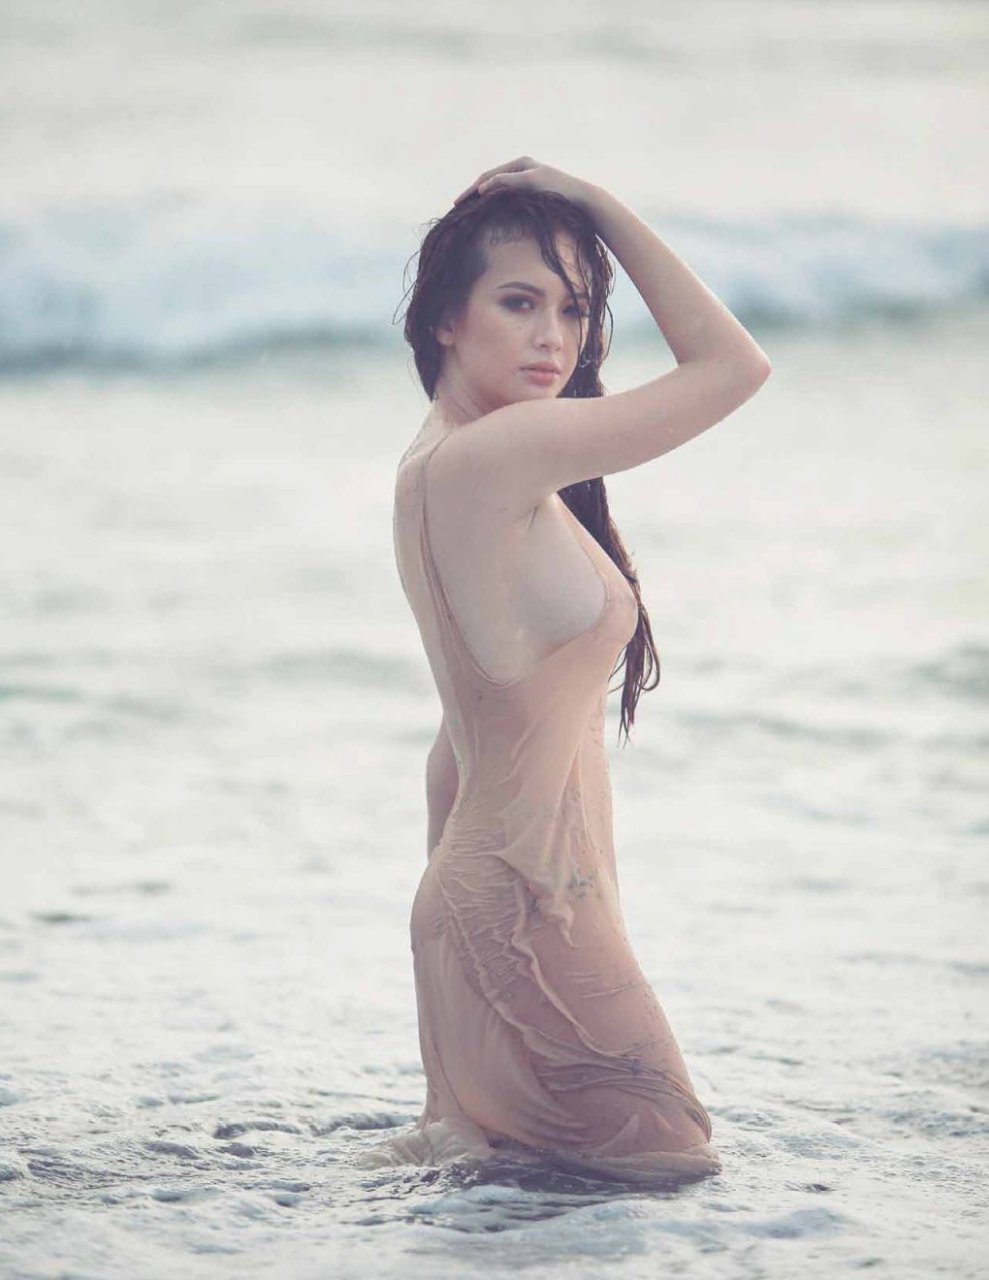 fhm philippines naked pictures